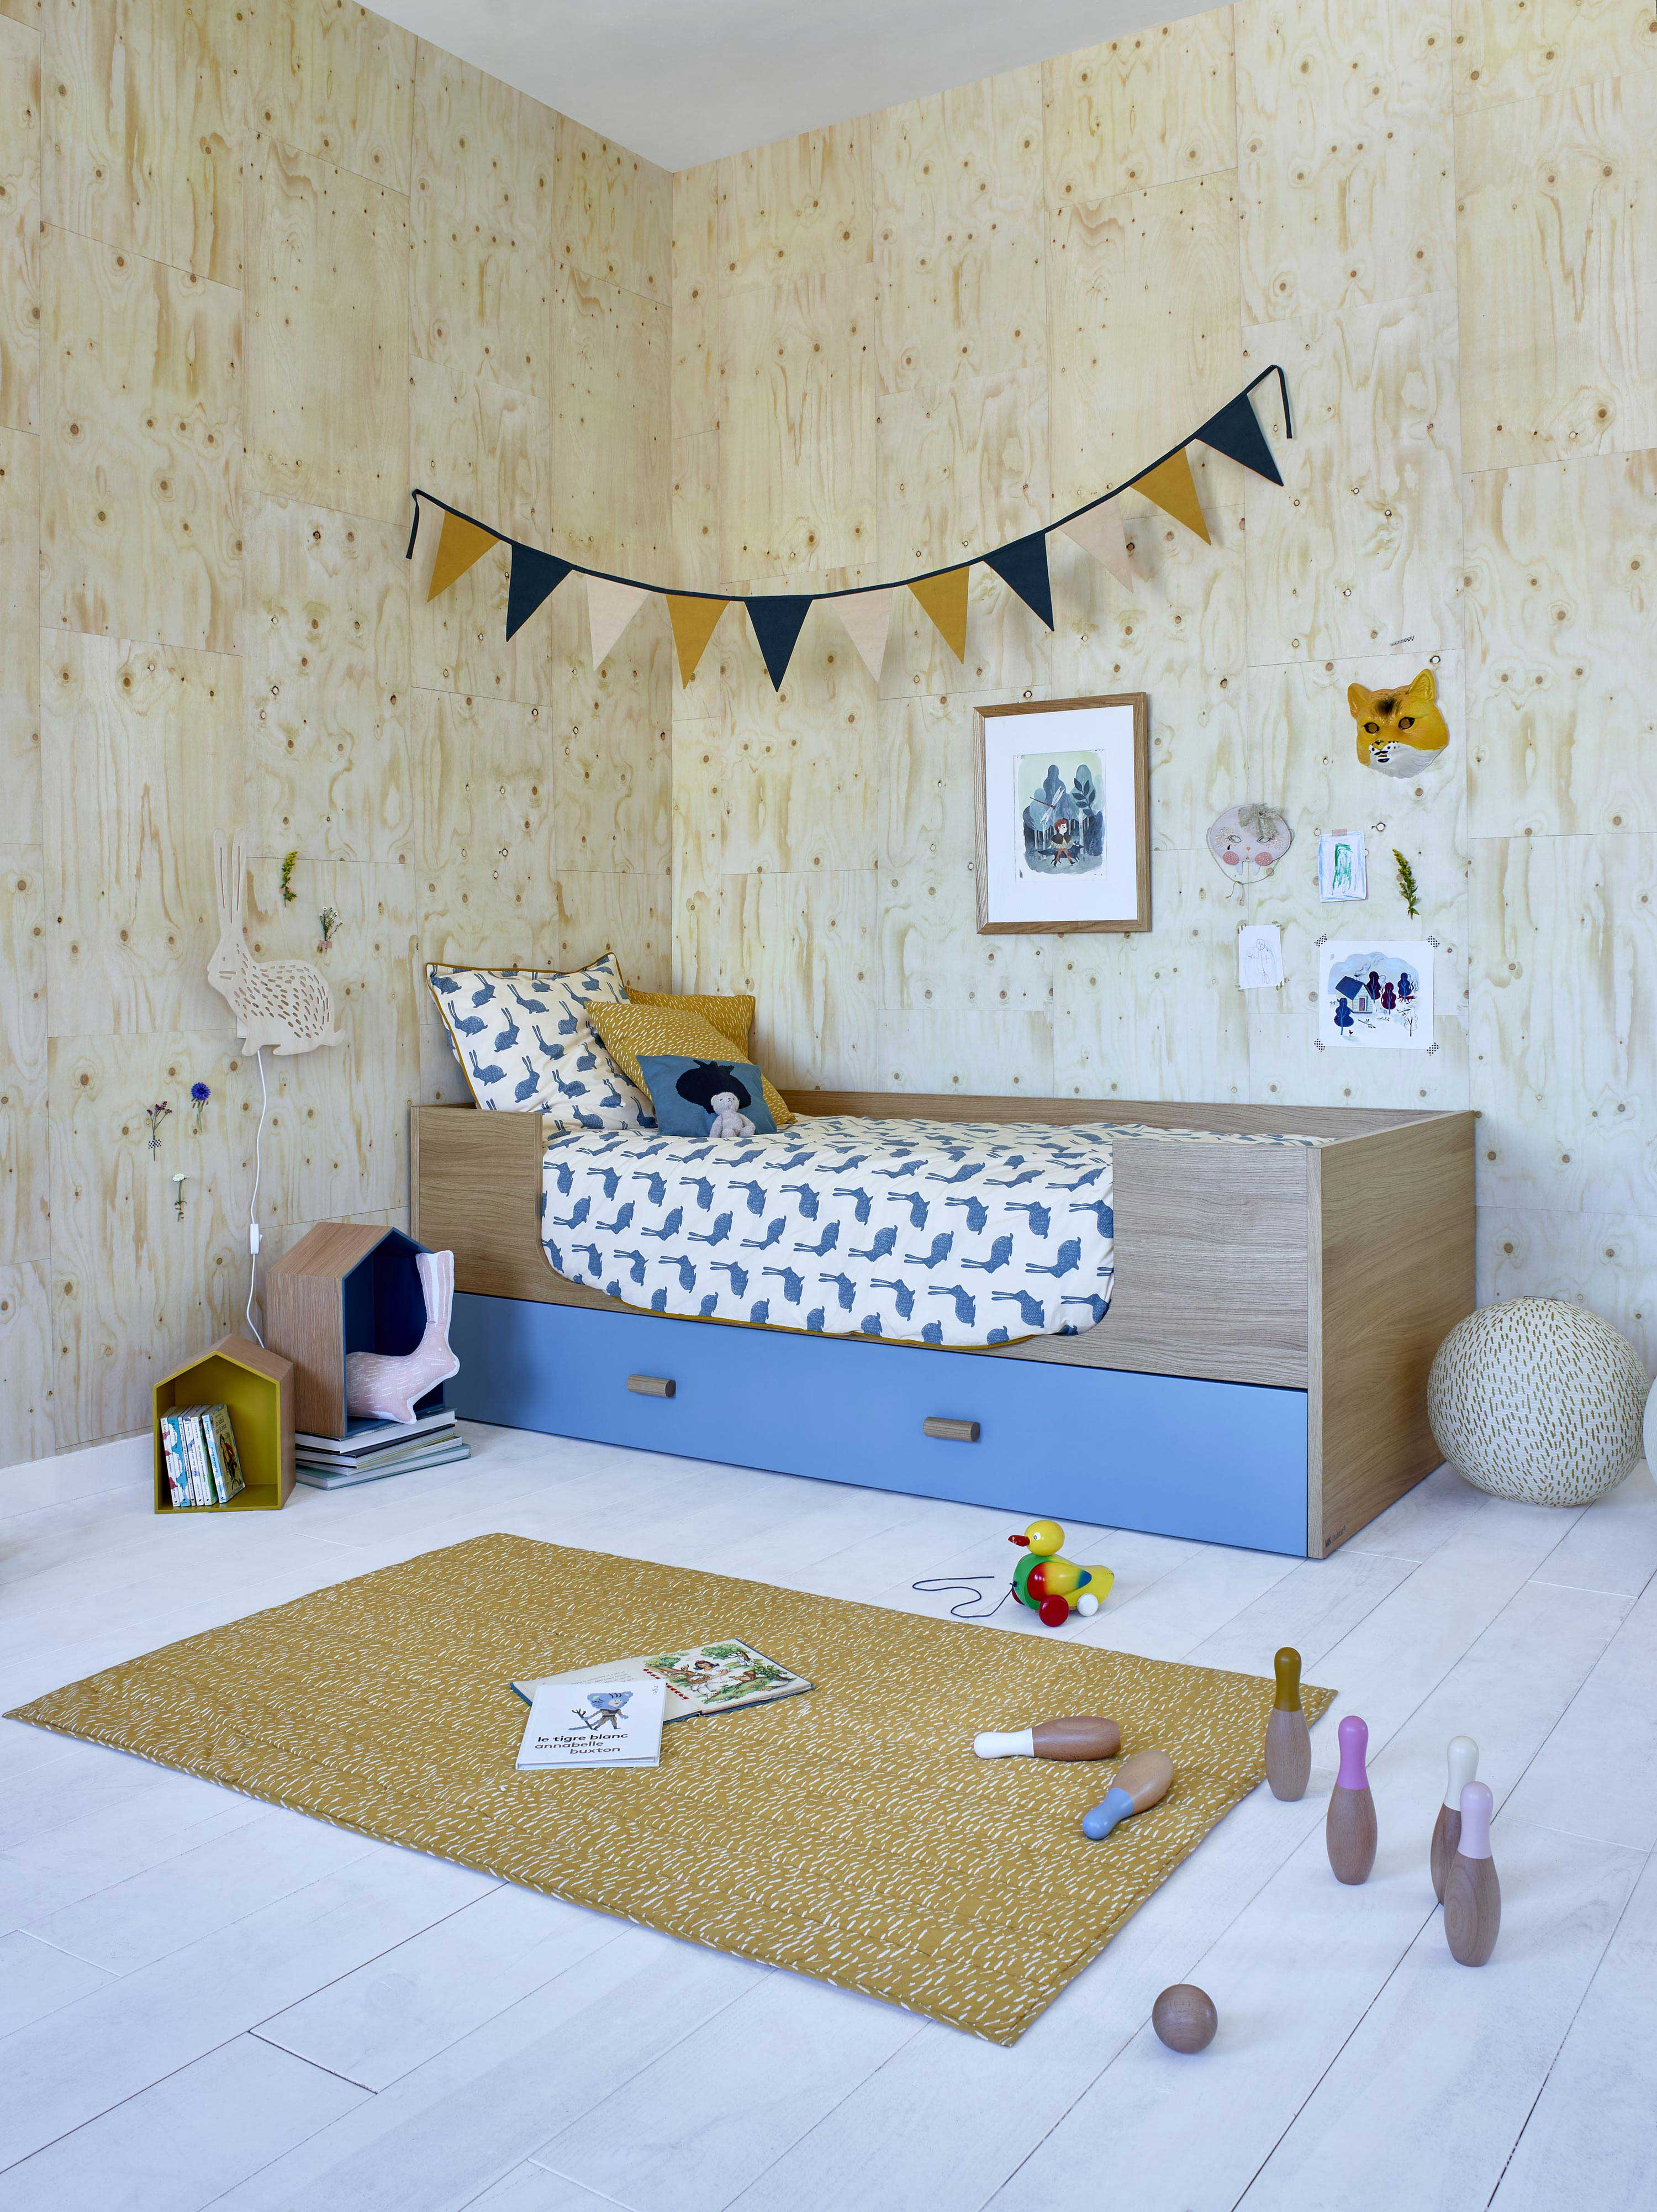 lit pour enfant avec tiroir. Black Bedroom Furniture Sets. Home Design Ideas